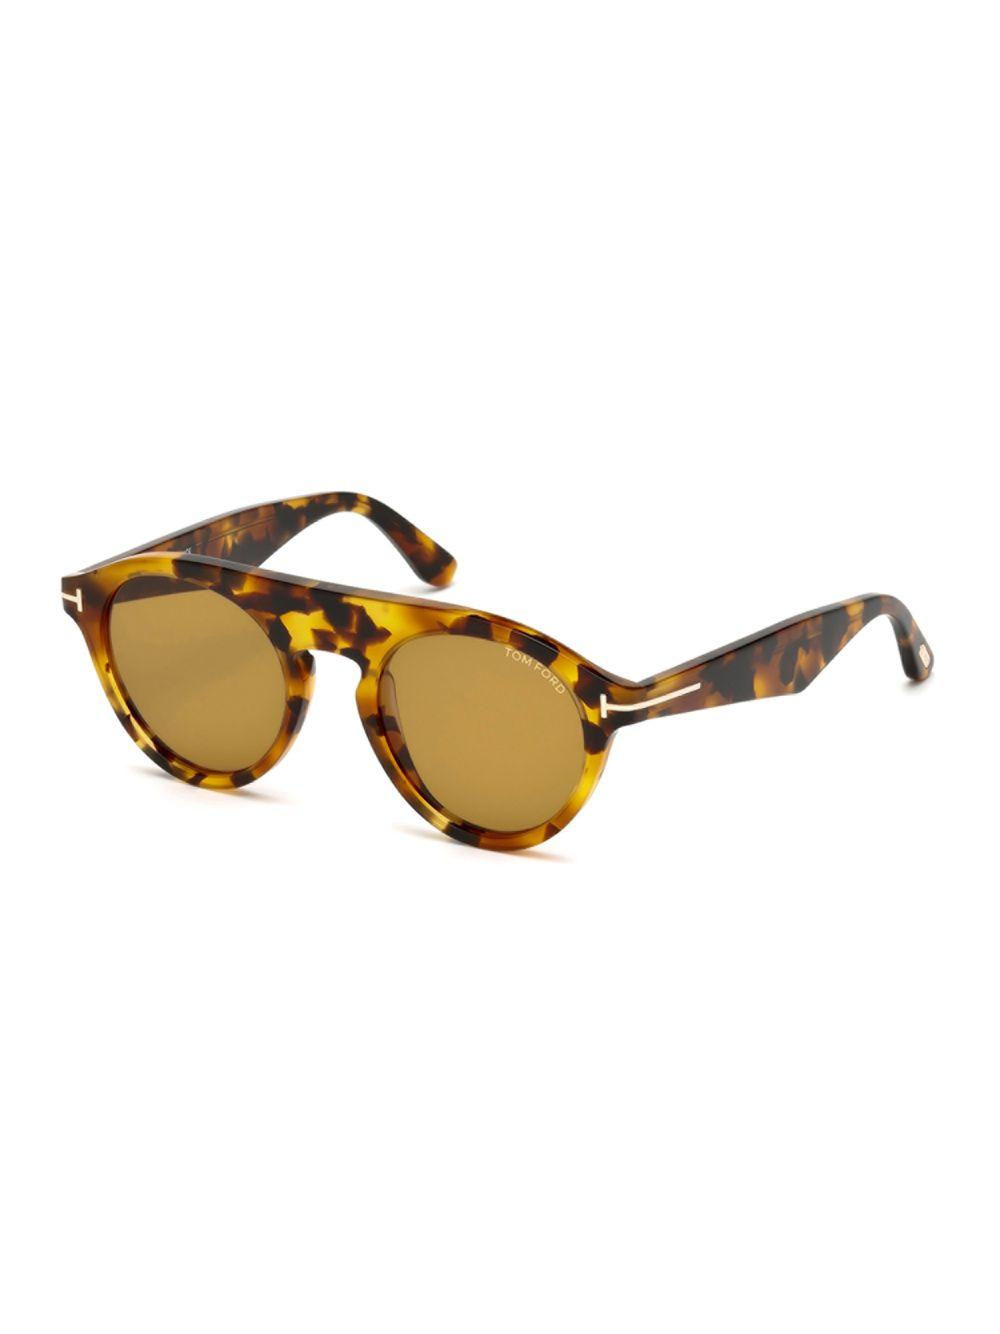 3a796ab88132 Lyst - Tom Ford Christopher Round Sunglasses in Brown